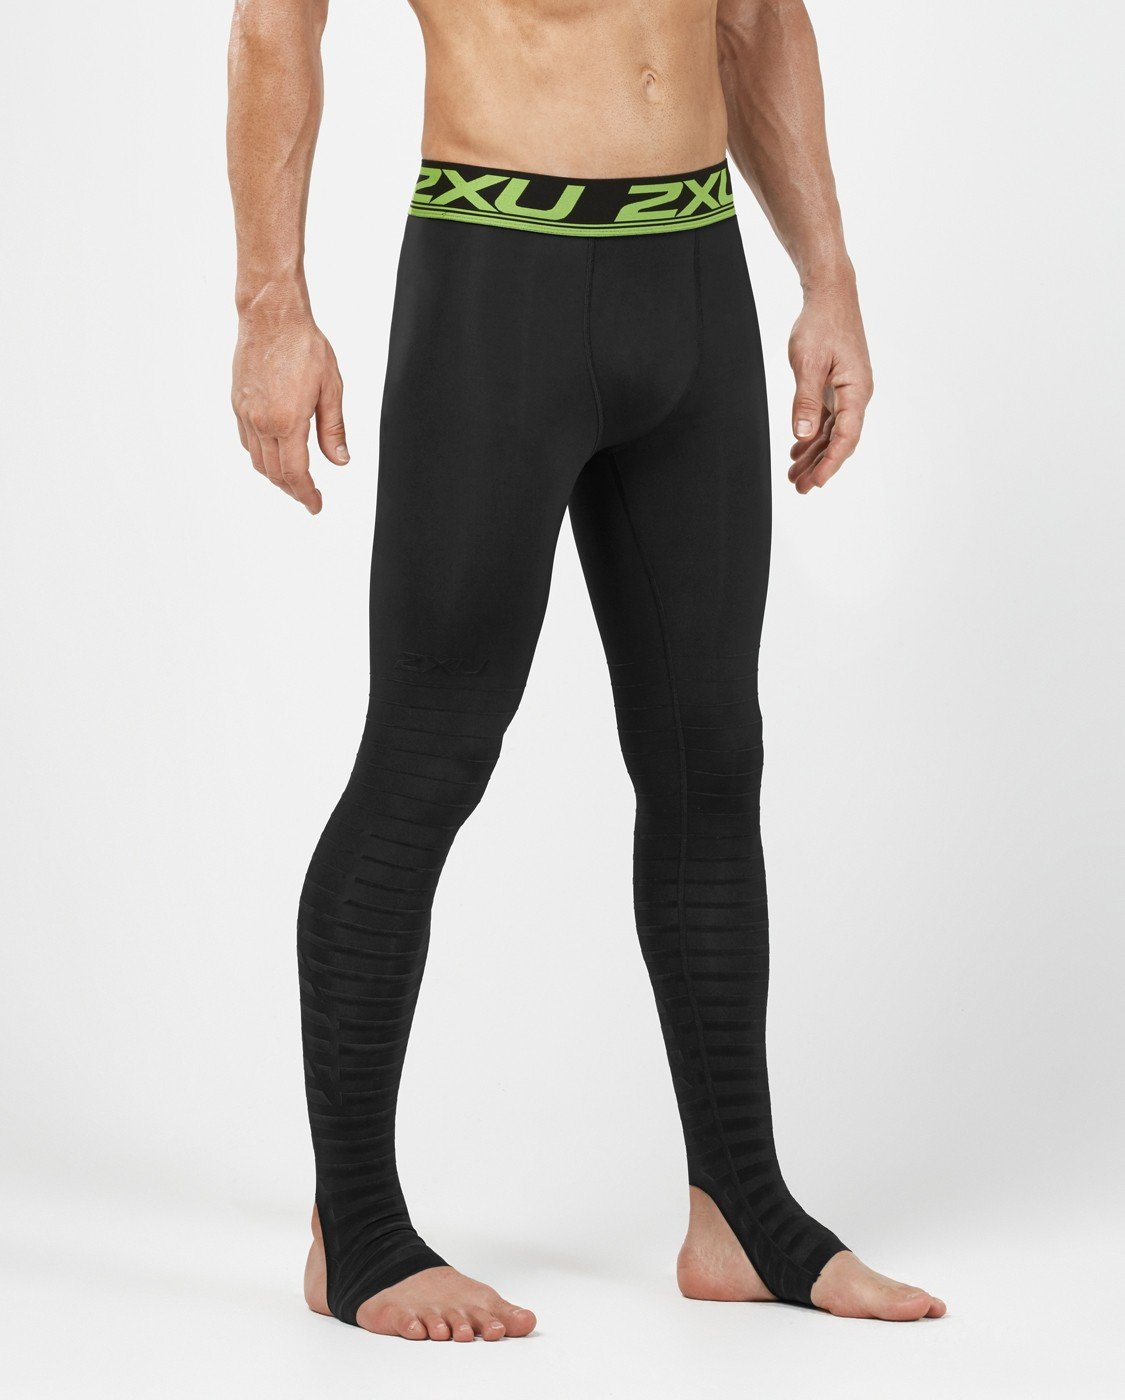 2XU Power Recovery Compr Tights